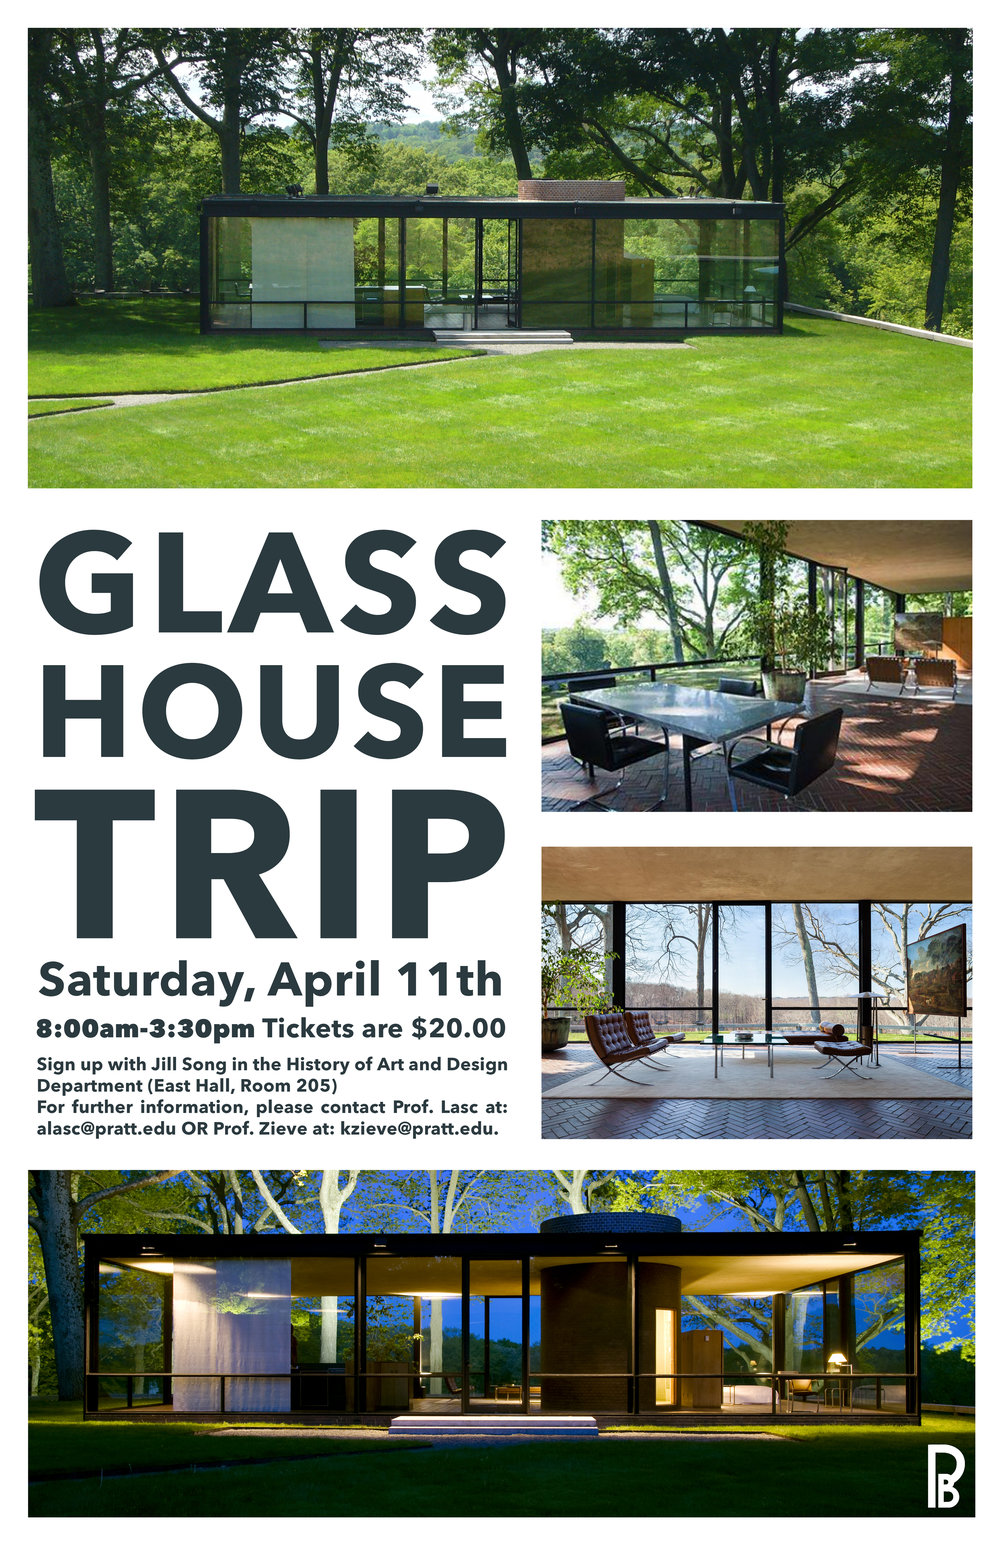 Glass-House-Trip-Poster copy.jpg